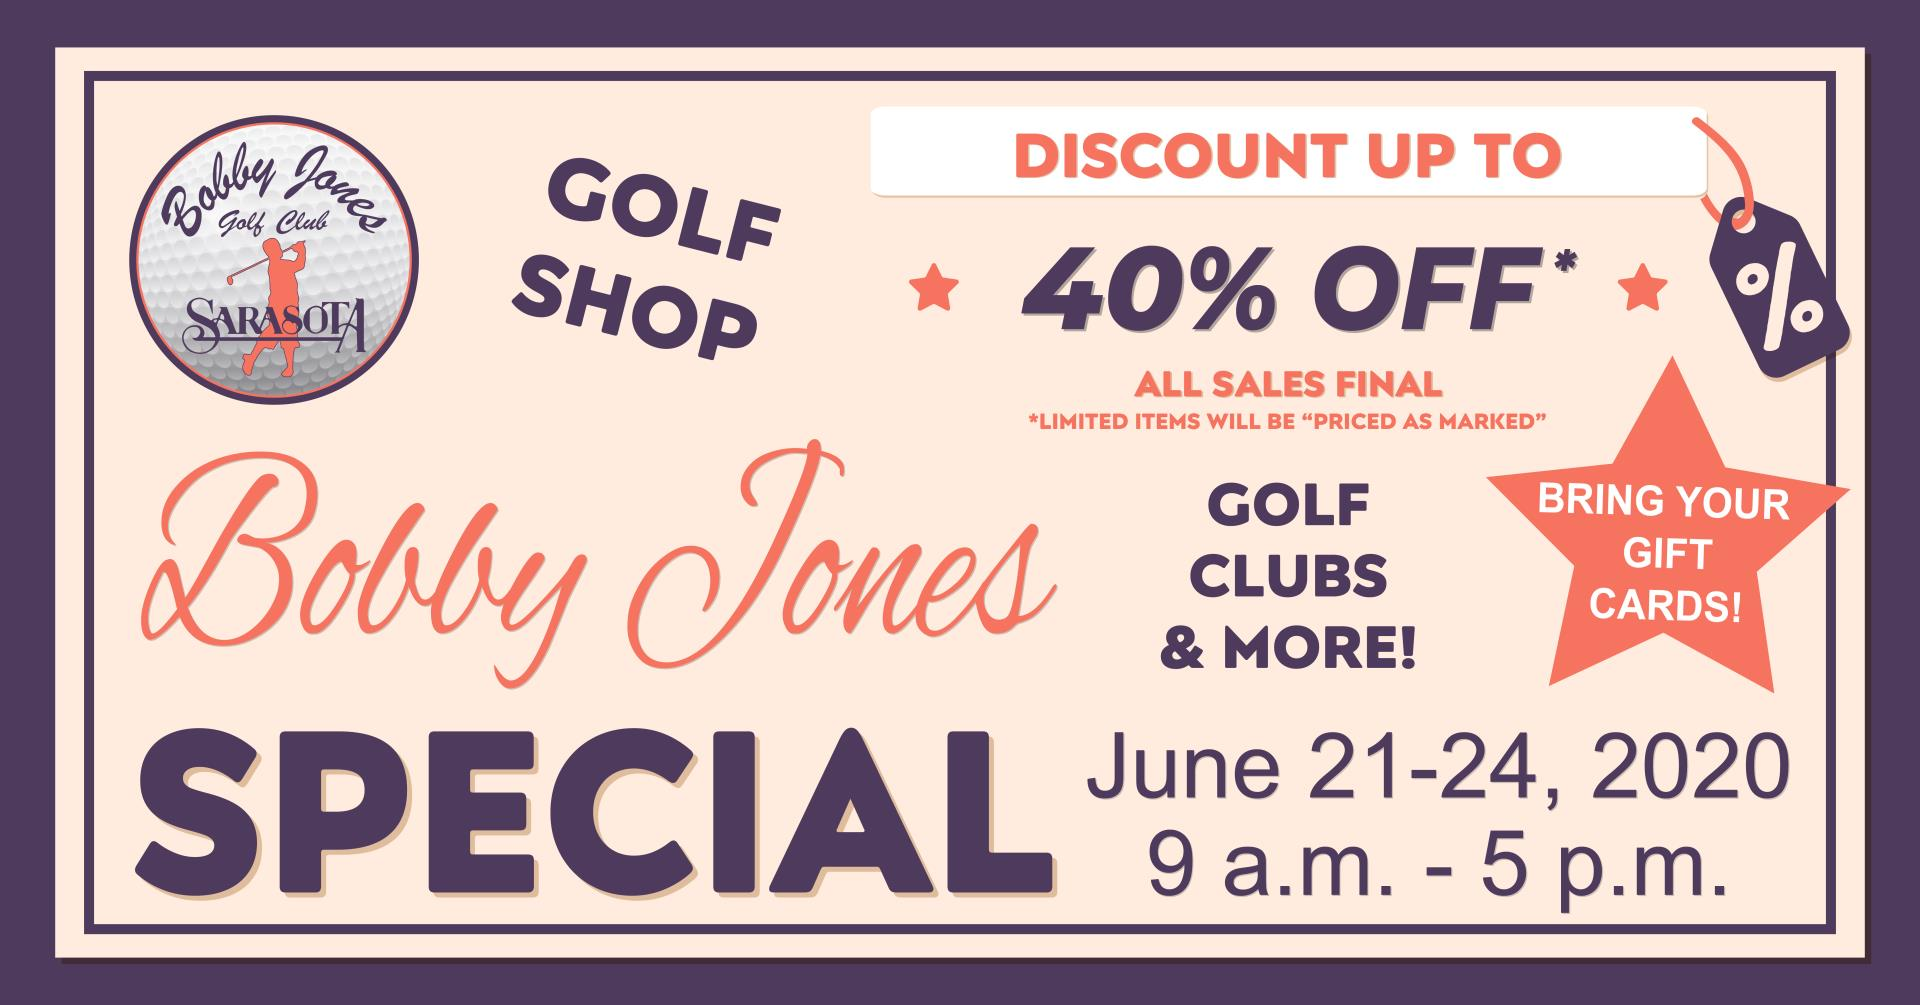 Bobby jones 40 % off Special